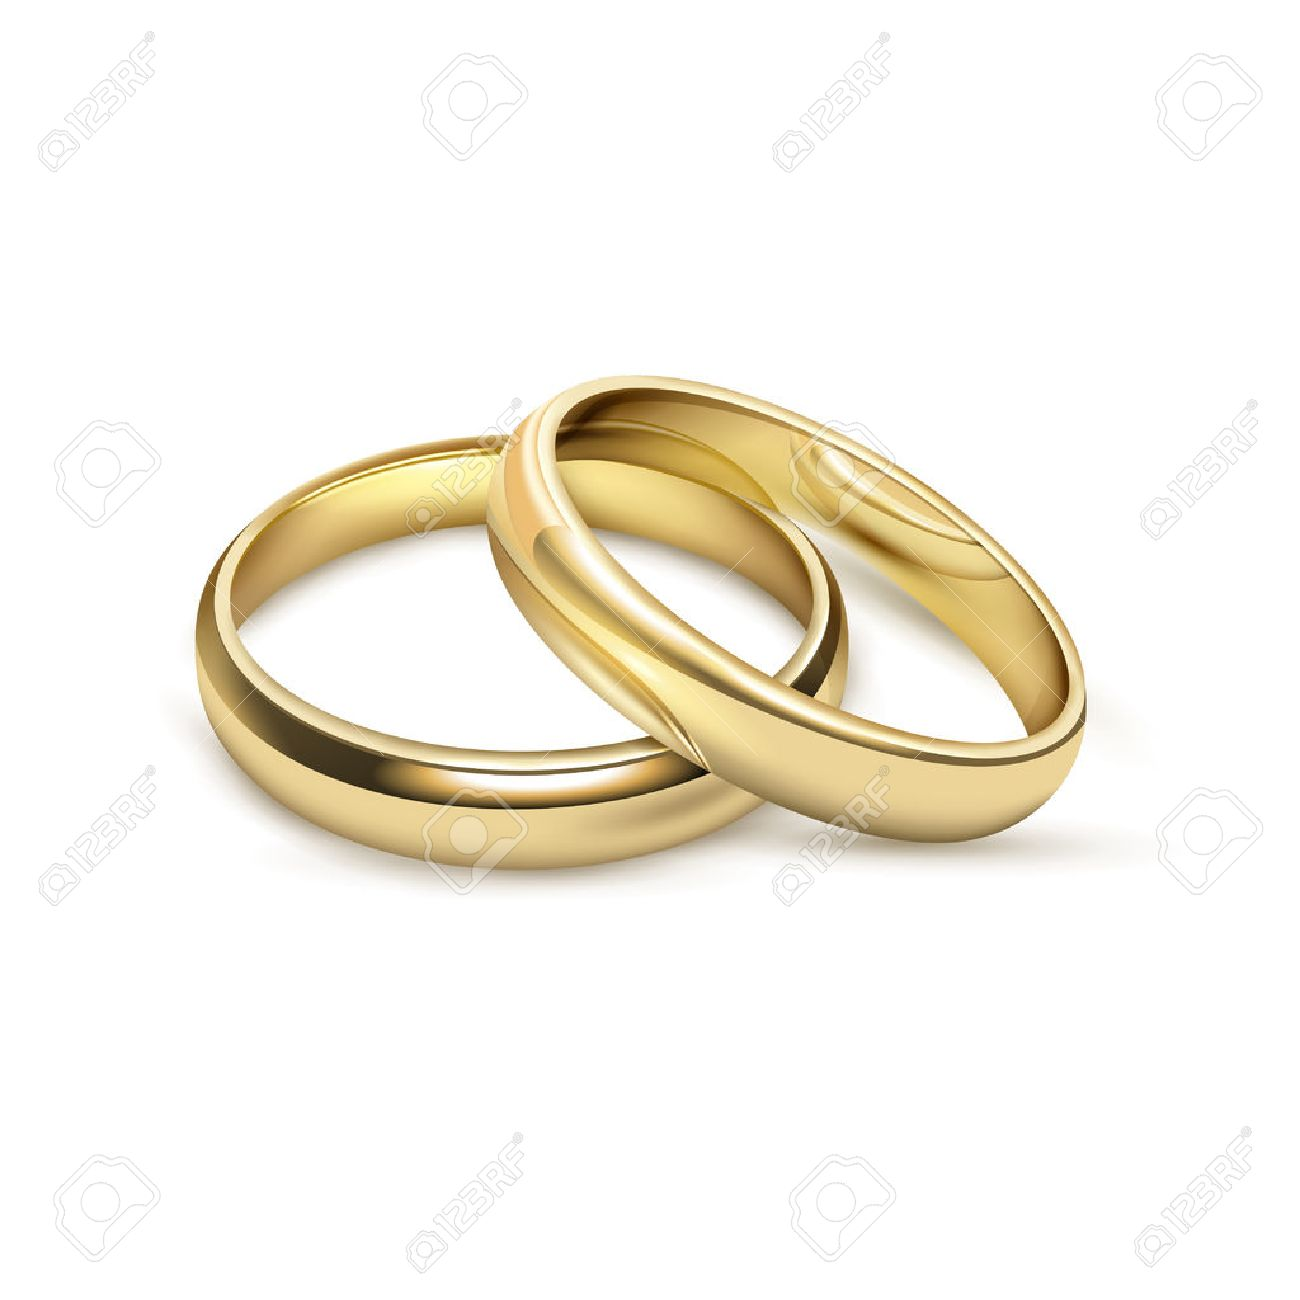 Two matching bridal wedding or engagement traditional gold rings set jewelry advertisement icon realistic vector illustration - 66601234